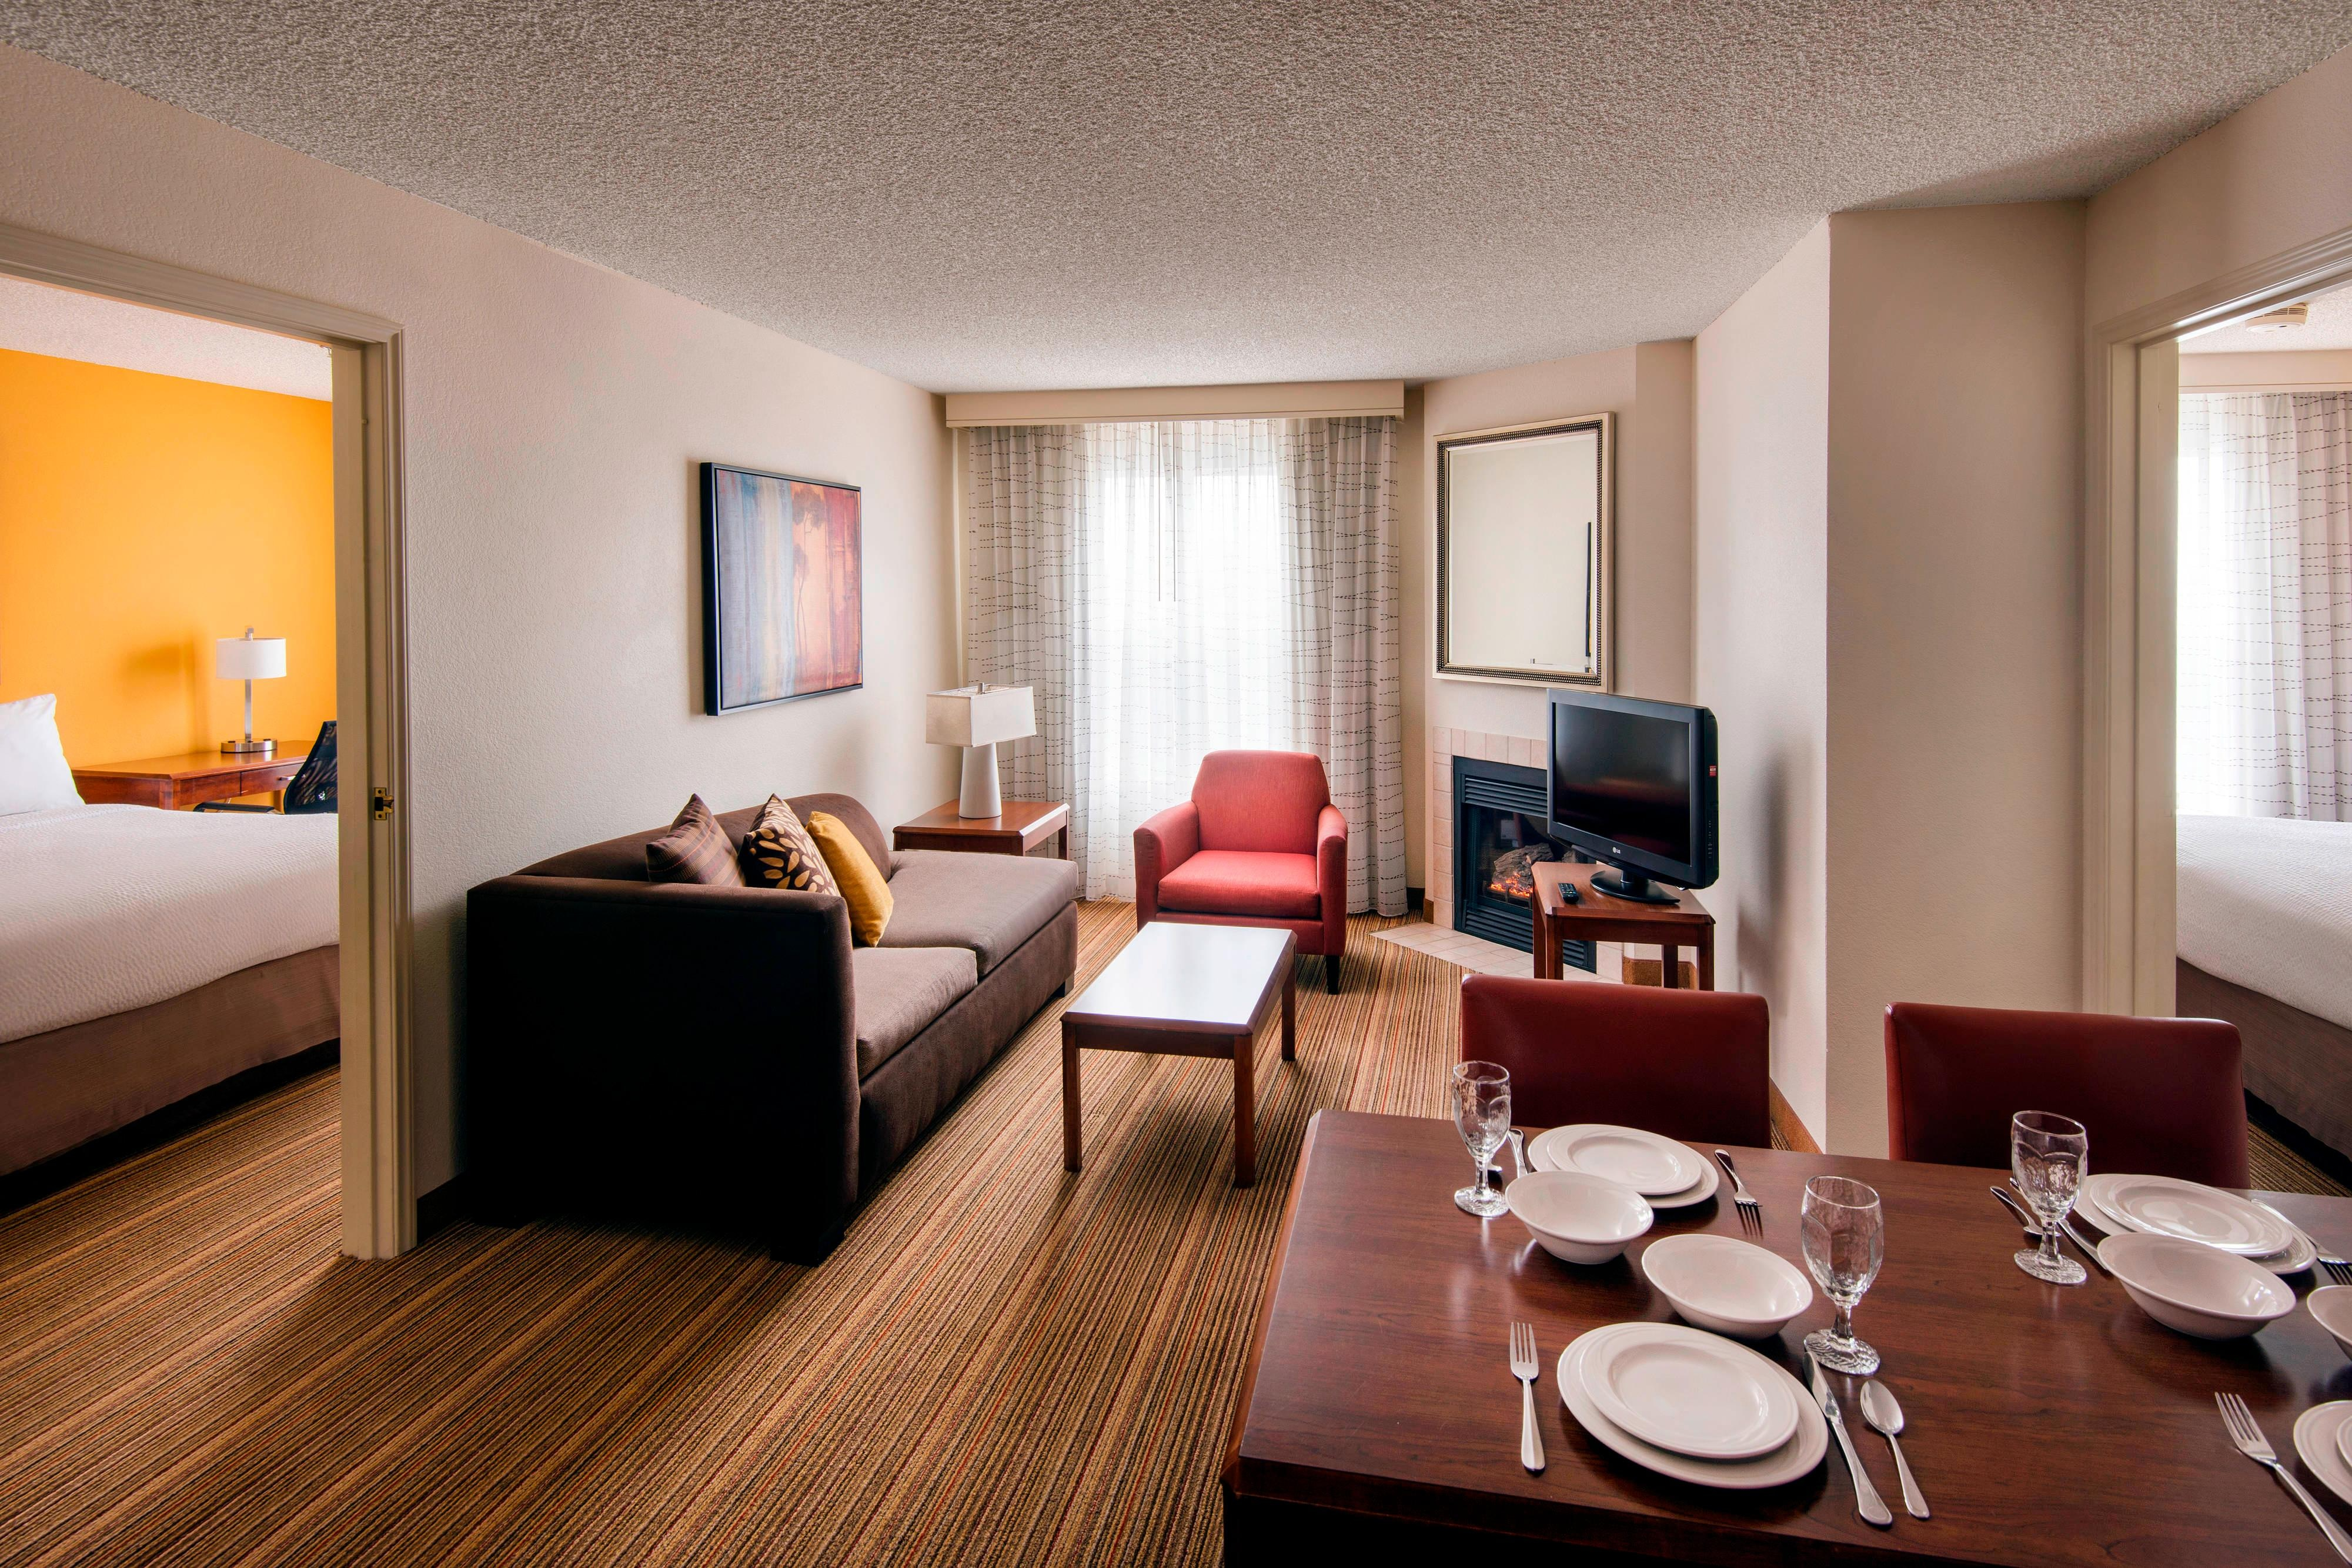 hor suite orleans hotels msyrm suites new louisiana newly bedroom metairie hotel rooms clsc residence inn in renovated